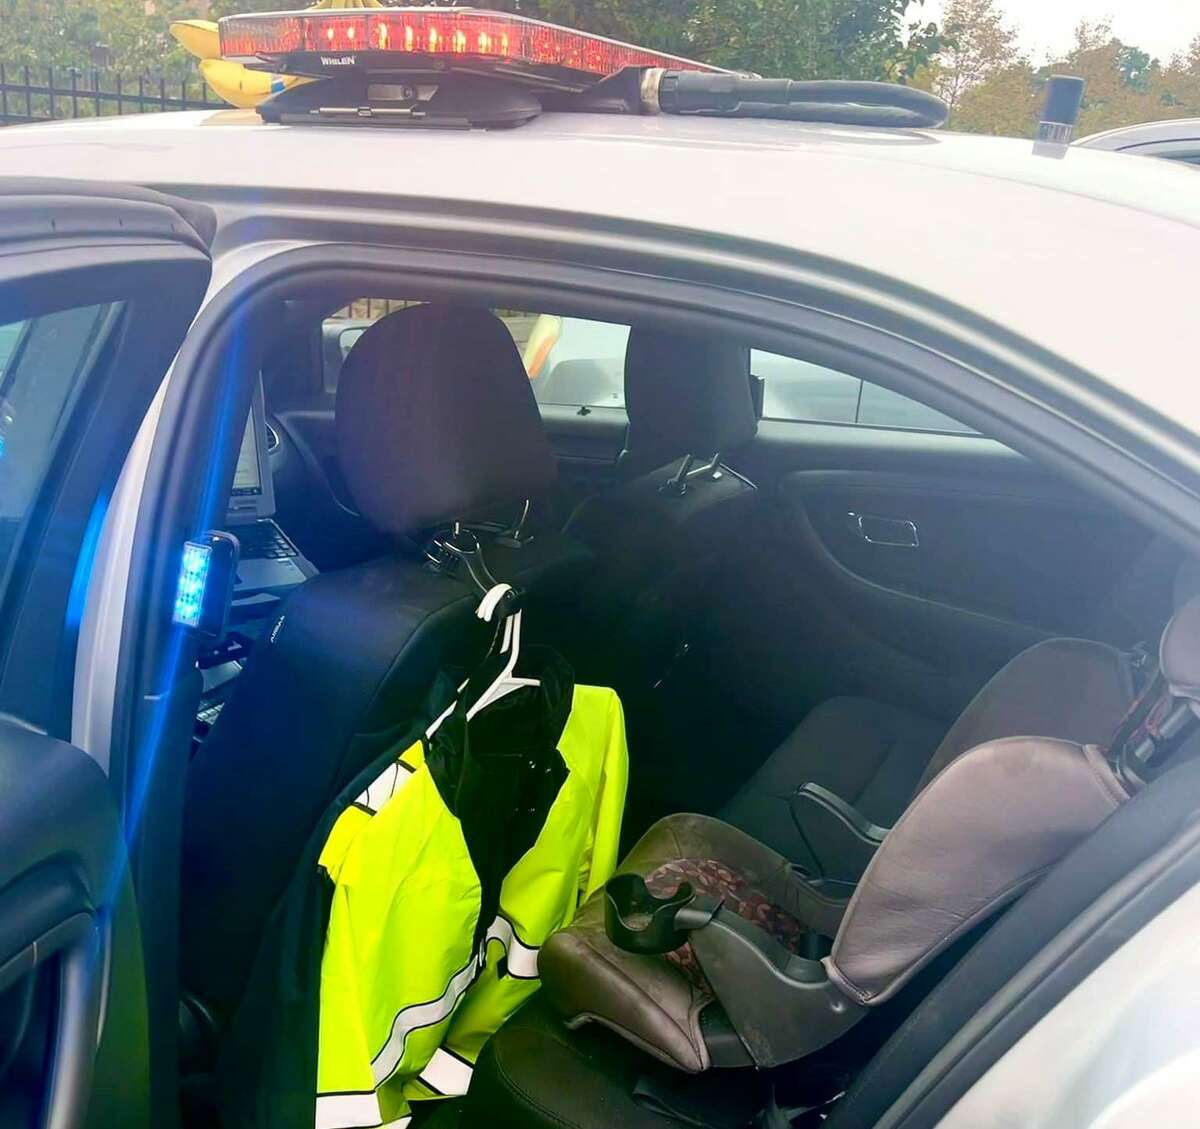 Connecticut state troopers had to install car seats in their vehicles after arresting a man allegedly driving under the influence with three children in his vehicle.